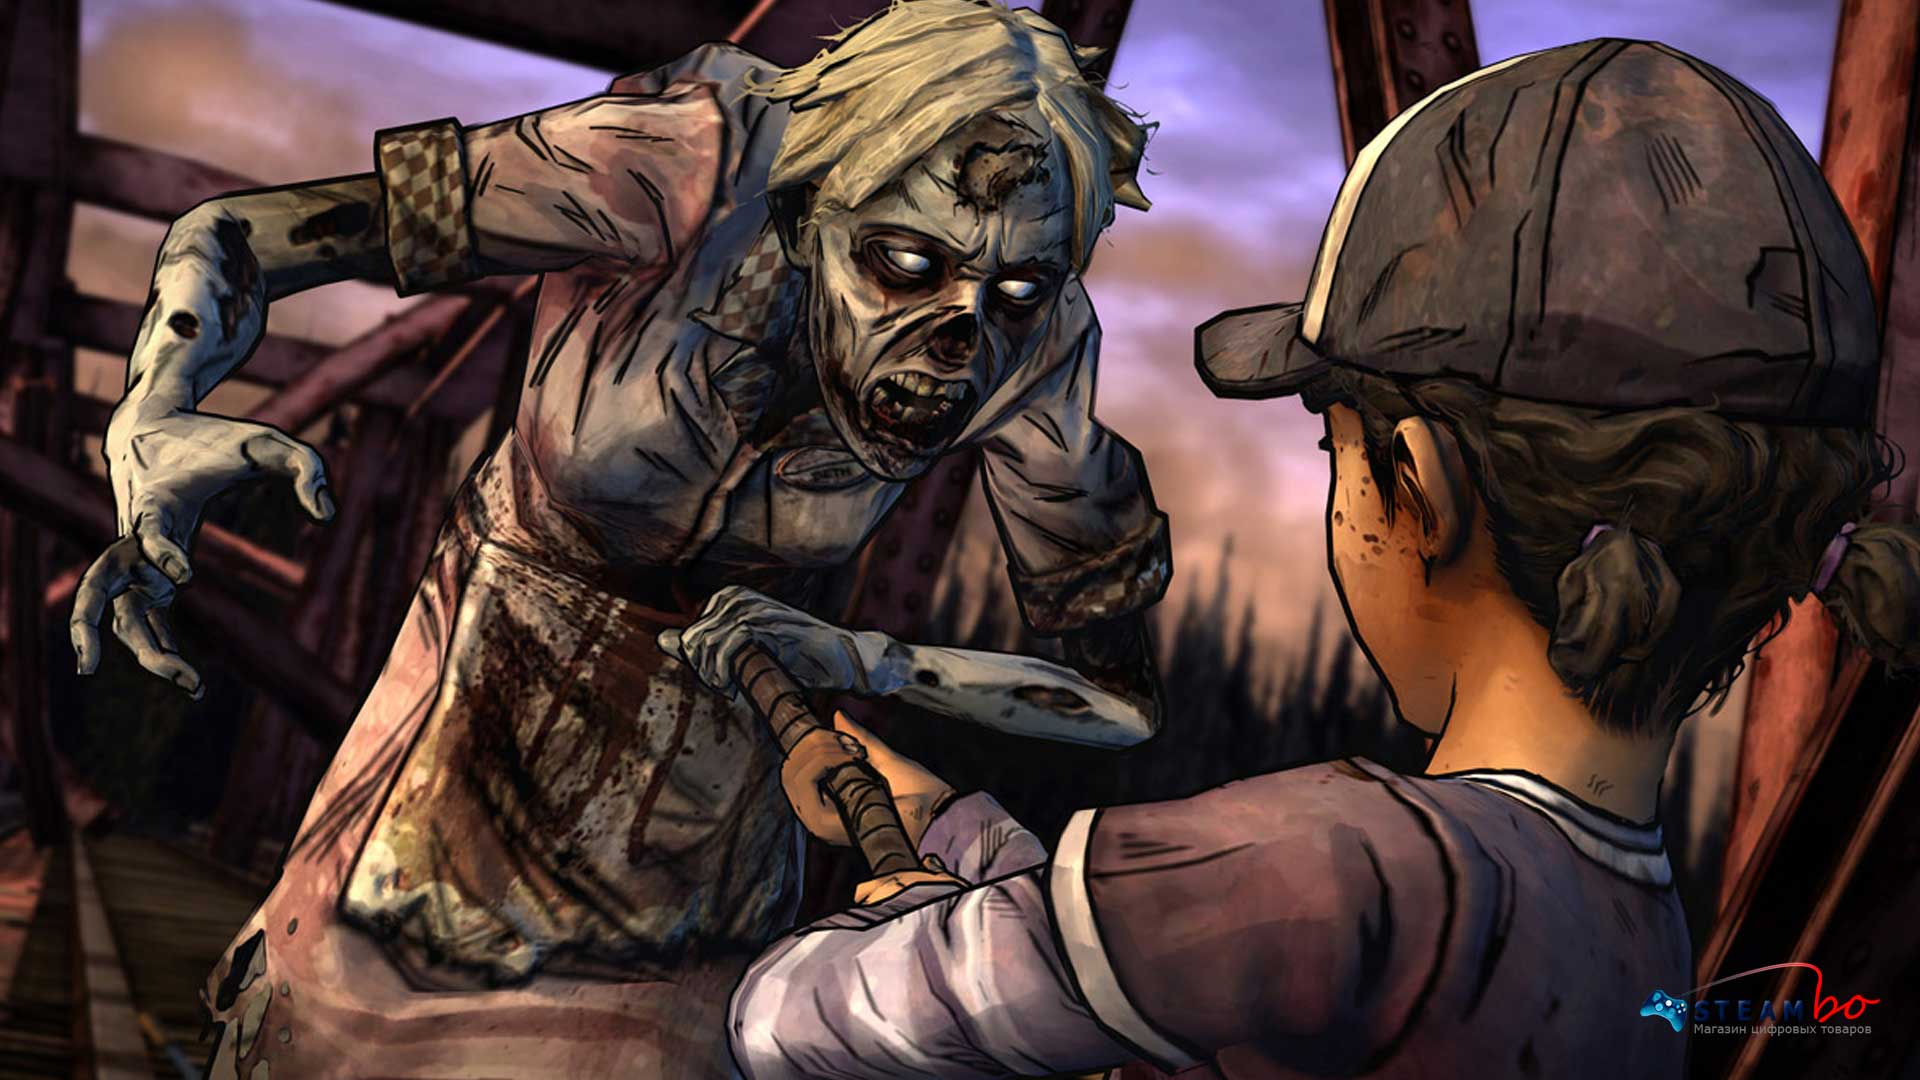 The Walking Dead Season 2 Region Free (Steam Gift / Key